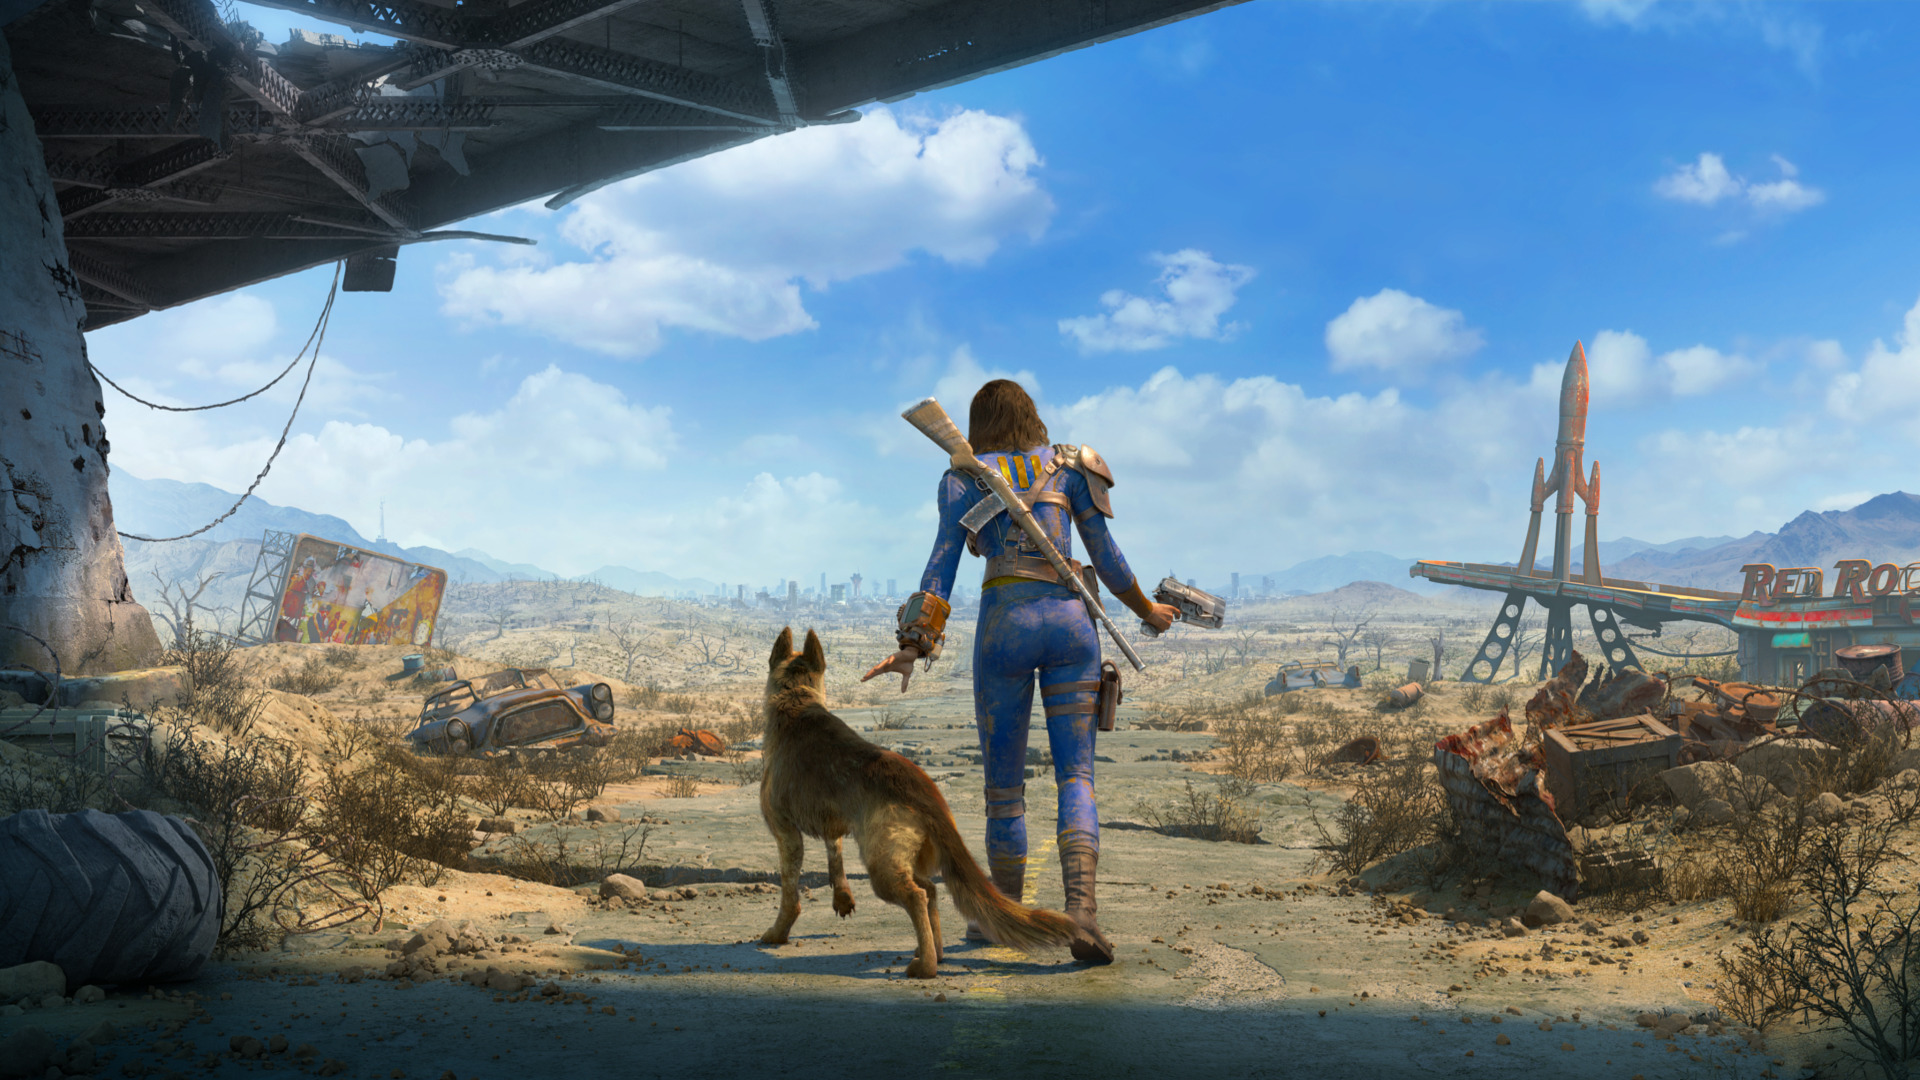 Anime Girls Wallpaper 5760x1080 Fallout 4 Dogmeat Weapon Apocalyptic Wallpapers Hd